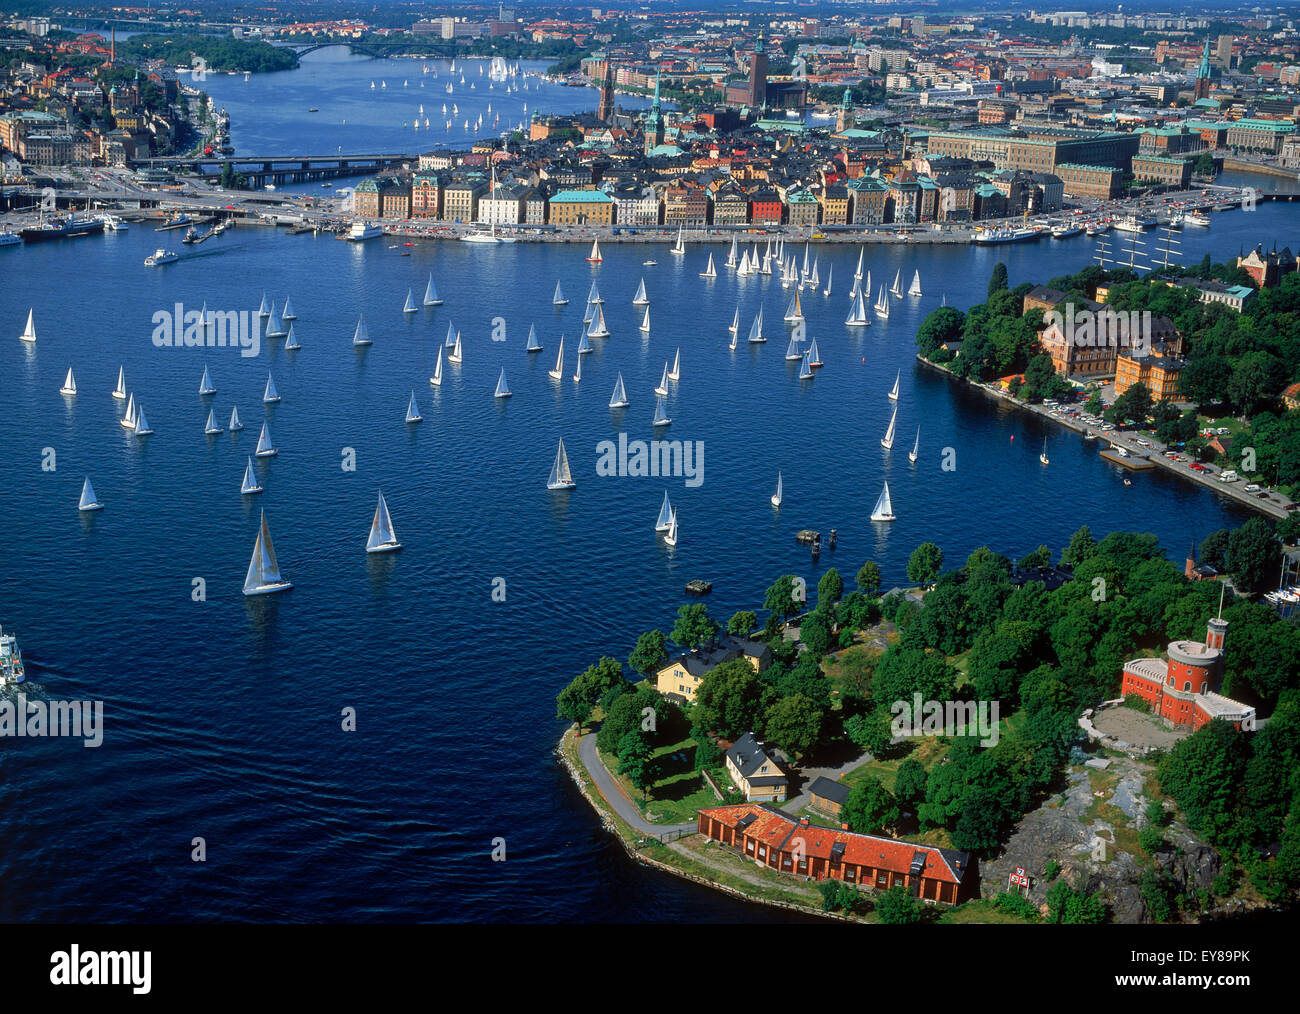 Aerial view of sailboats surrounding The Old Town of Stockholm during summer regatta on Saltsjön waters a bay - Stock Image